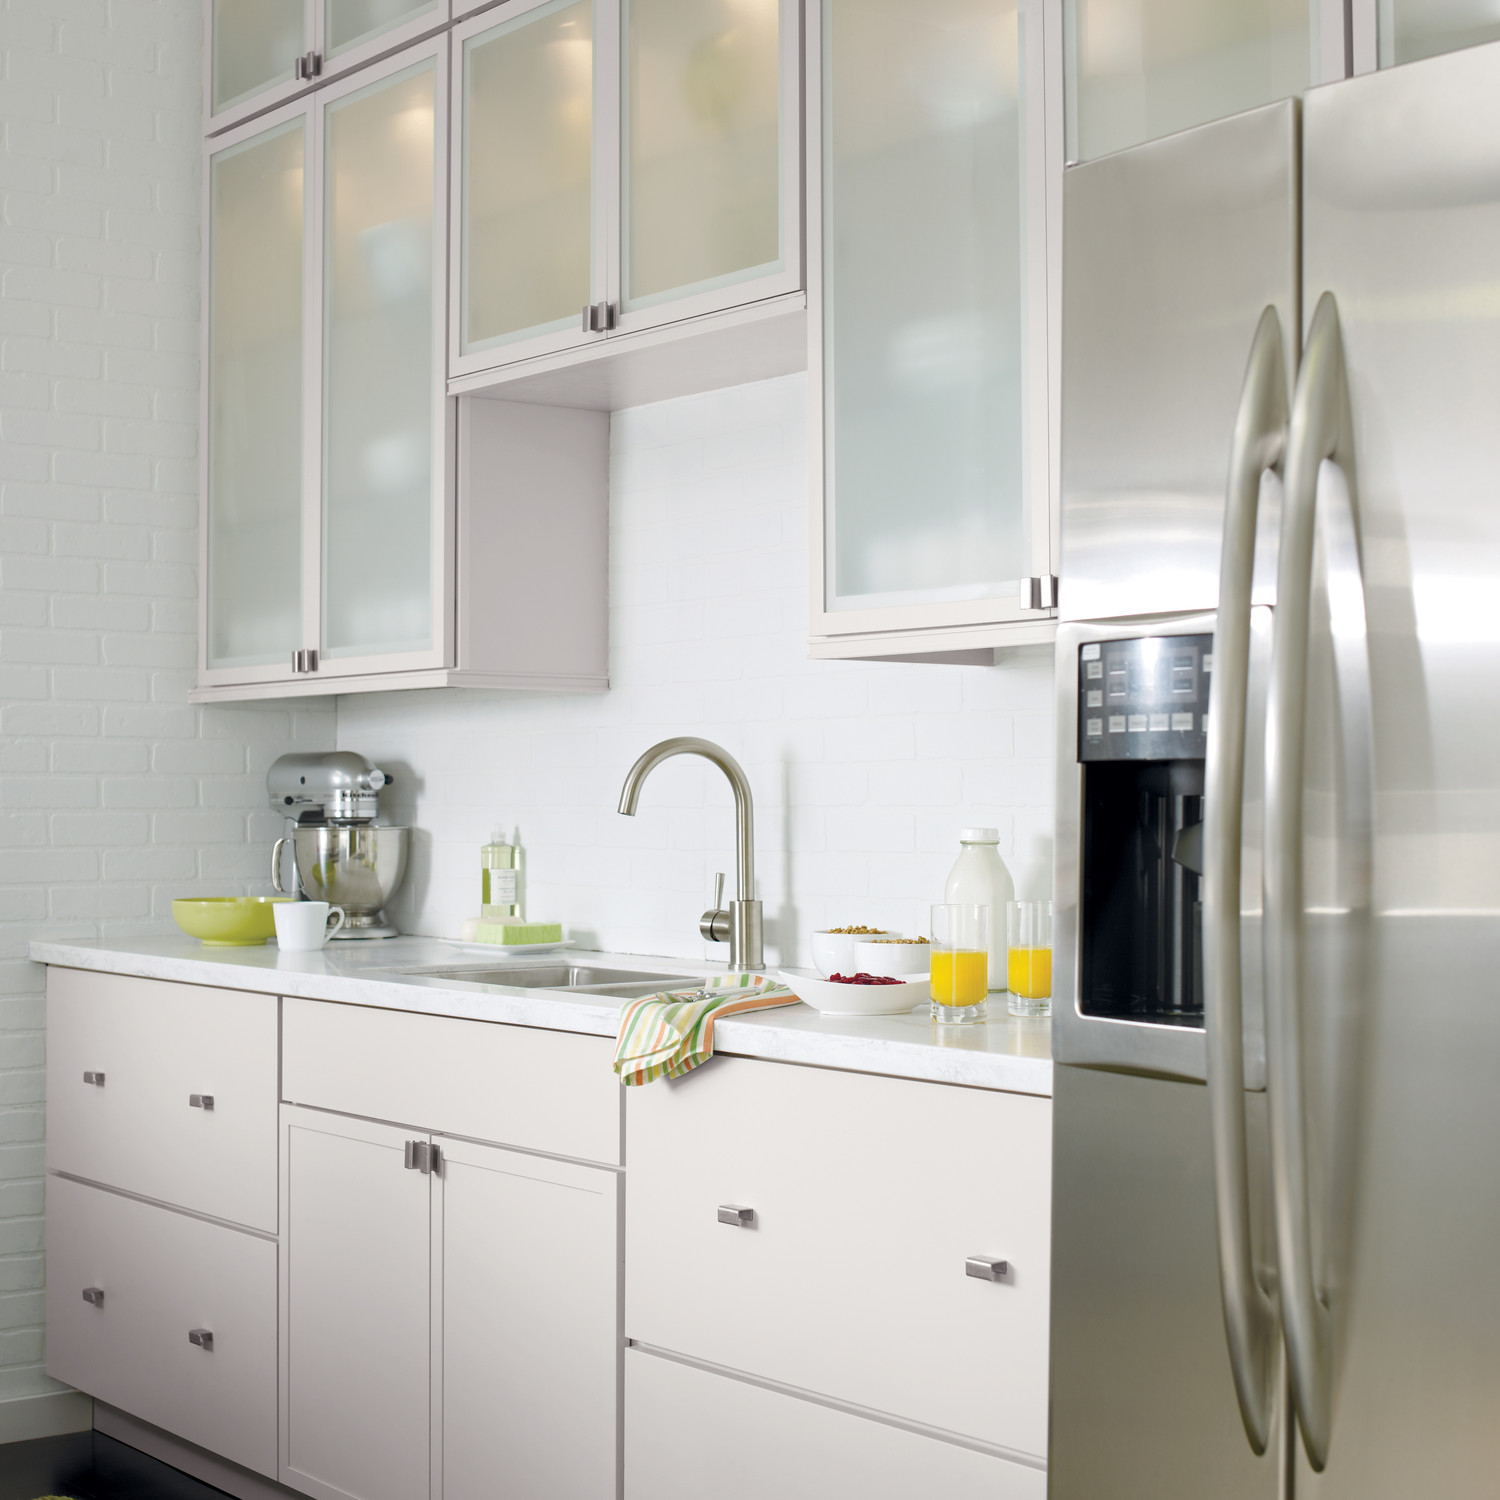 6 Common Kitchen Remodeling Myths, Debunked (Plus, One Amazing ...